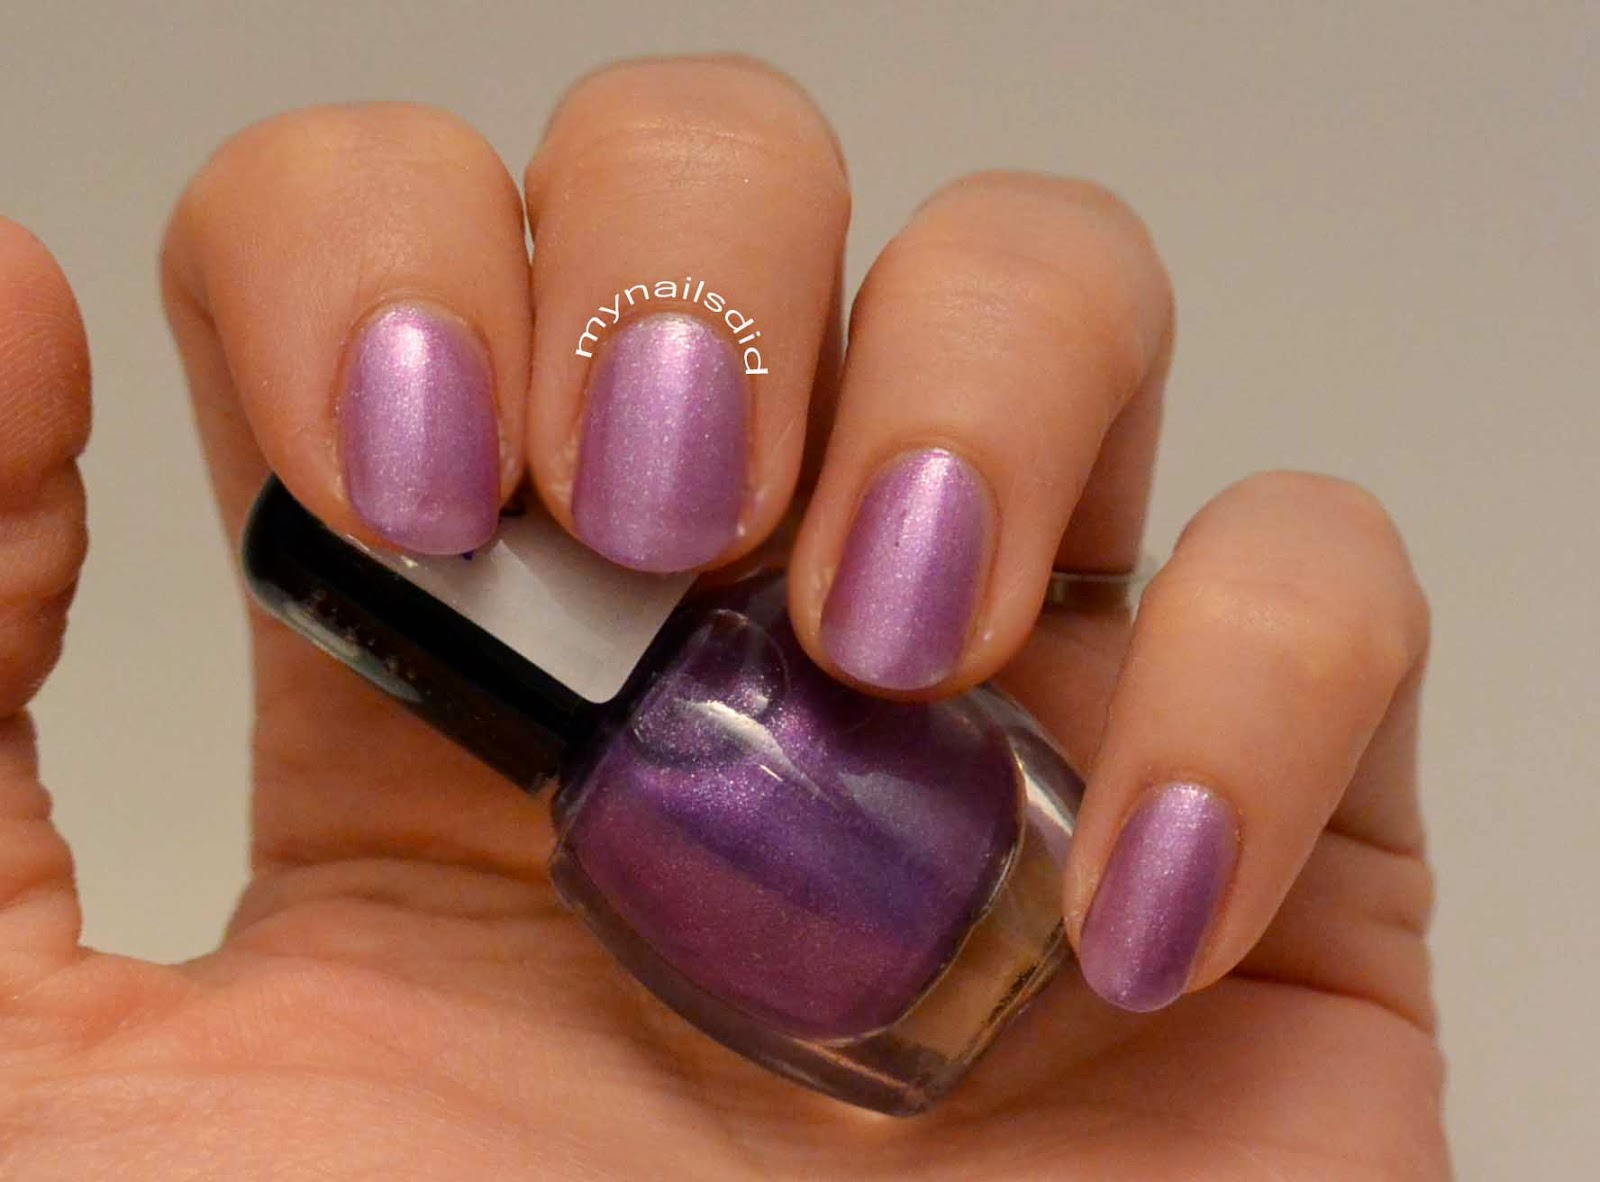 My Nails Did: MTL swatches Lafayette